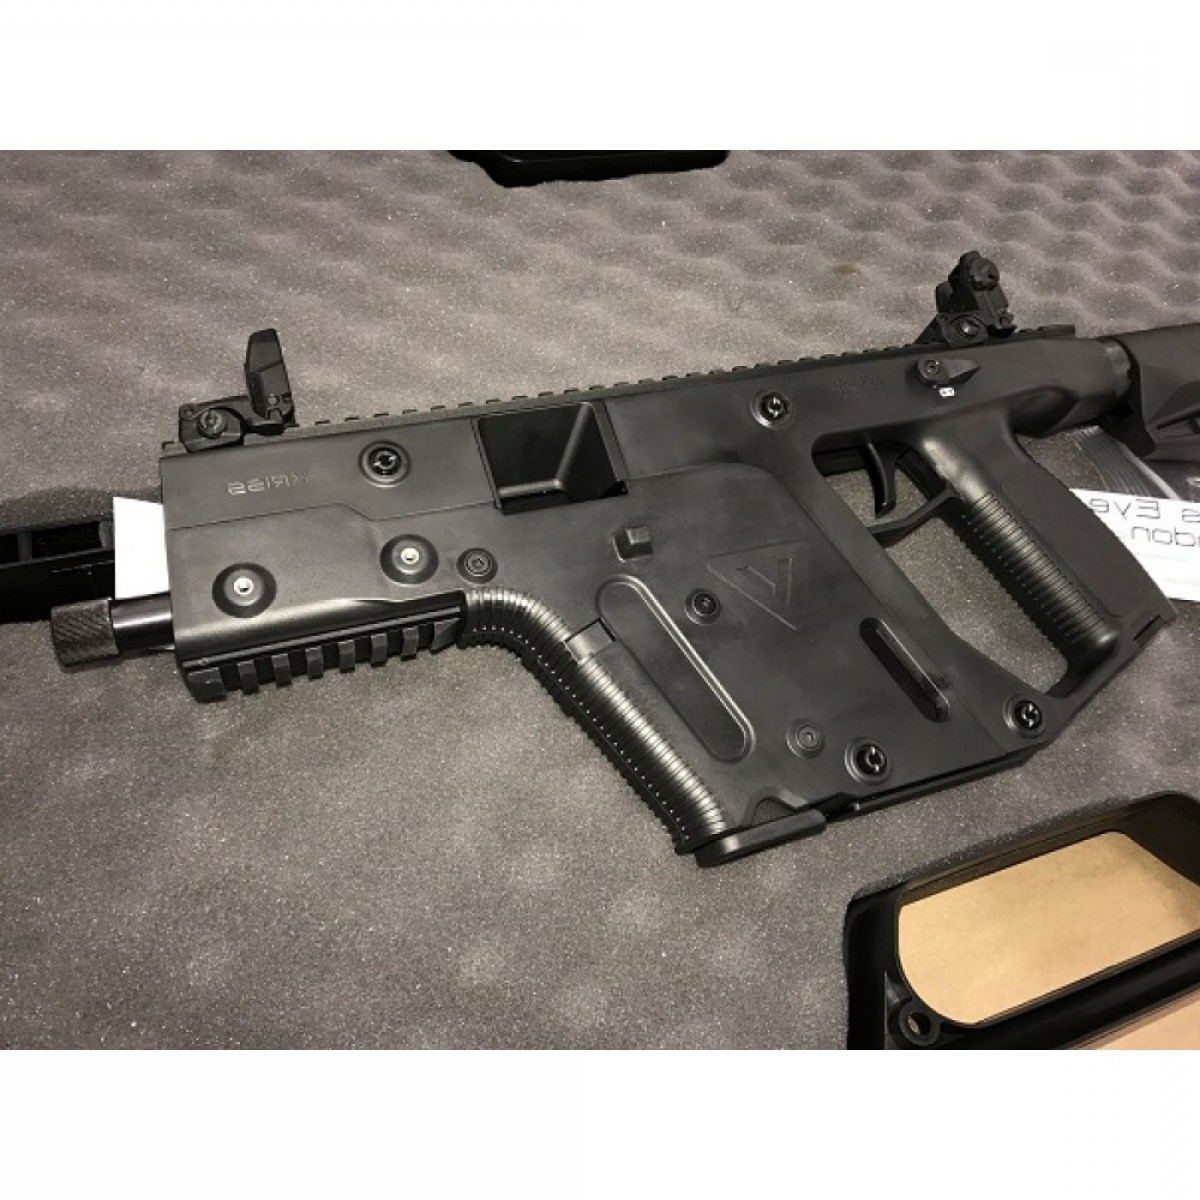 Kriss Vector 45ACP Carbine: Kriss Vector Gen Ii Sbr Semi Auto Rifle Acp Barrel M Stock Black Restricted